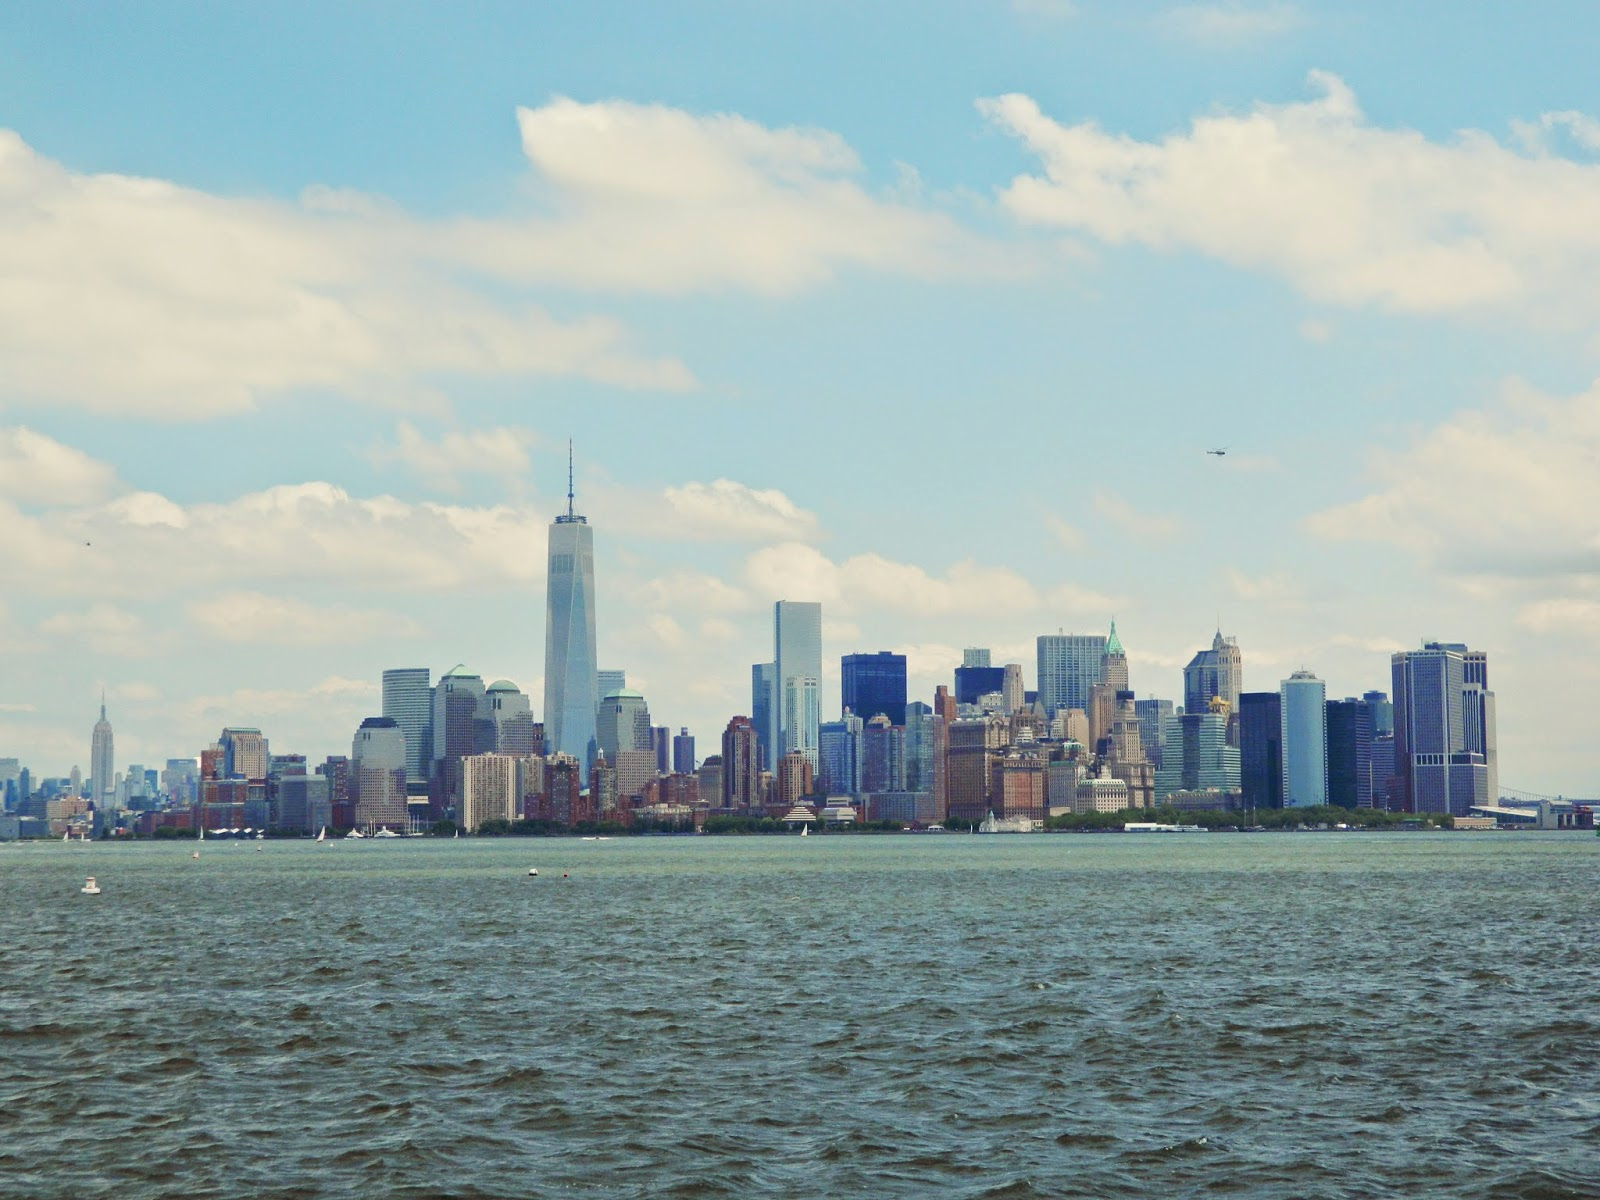 new york city skyline from statue of liberty clear day beautiful sun finance district